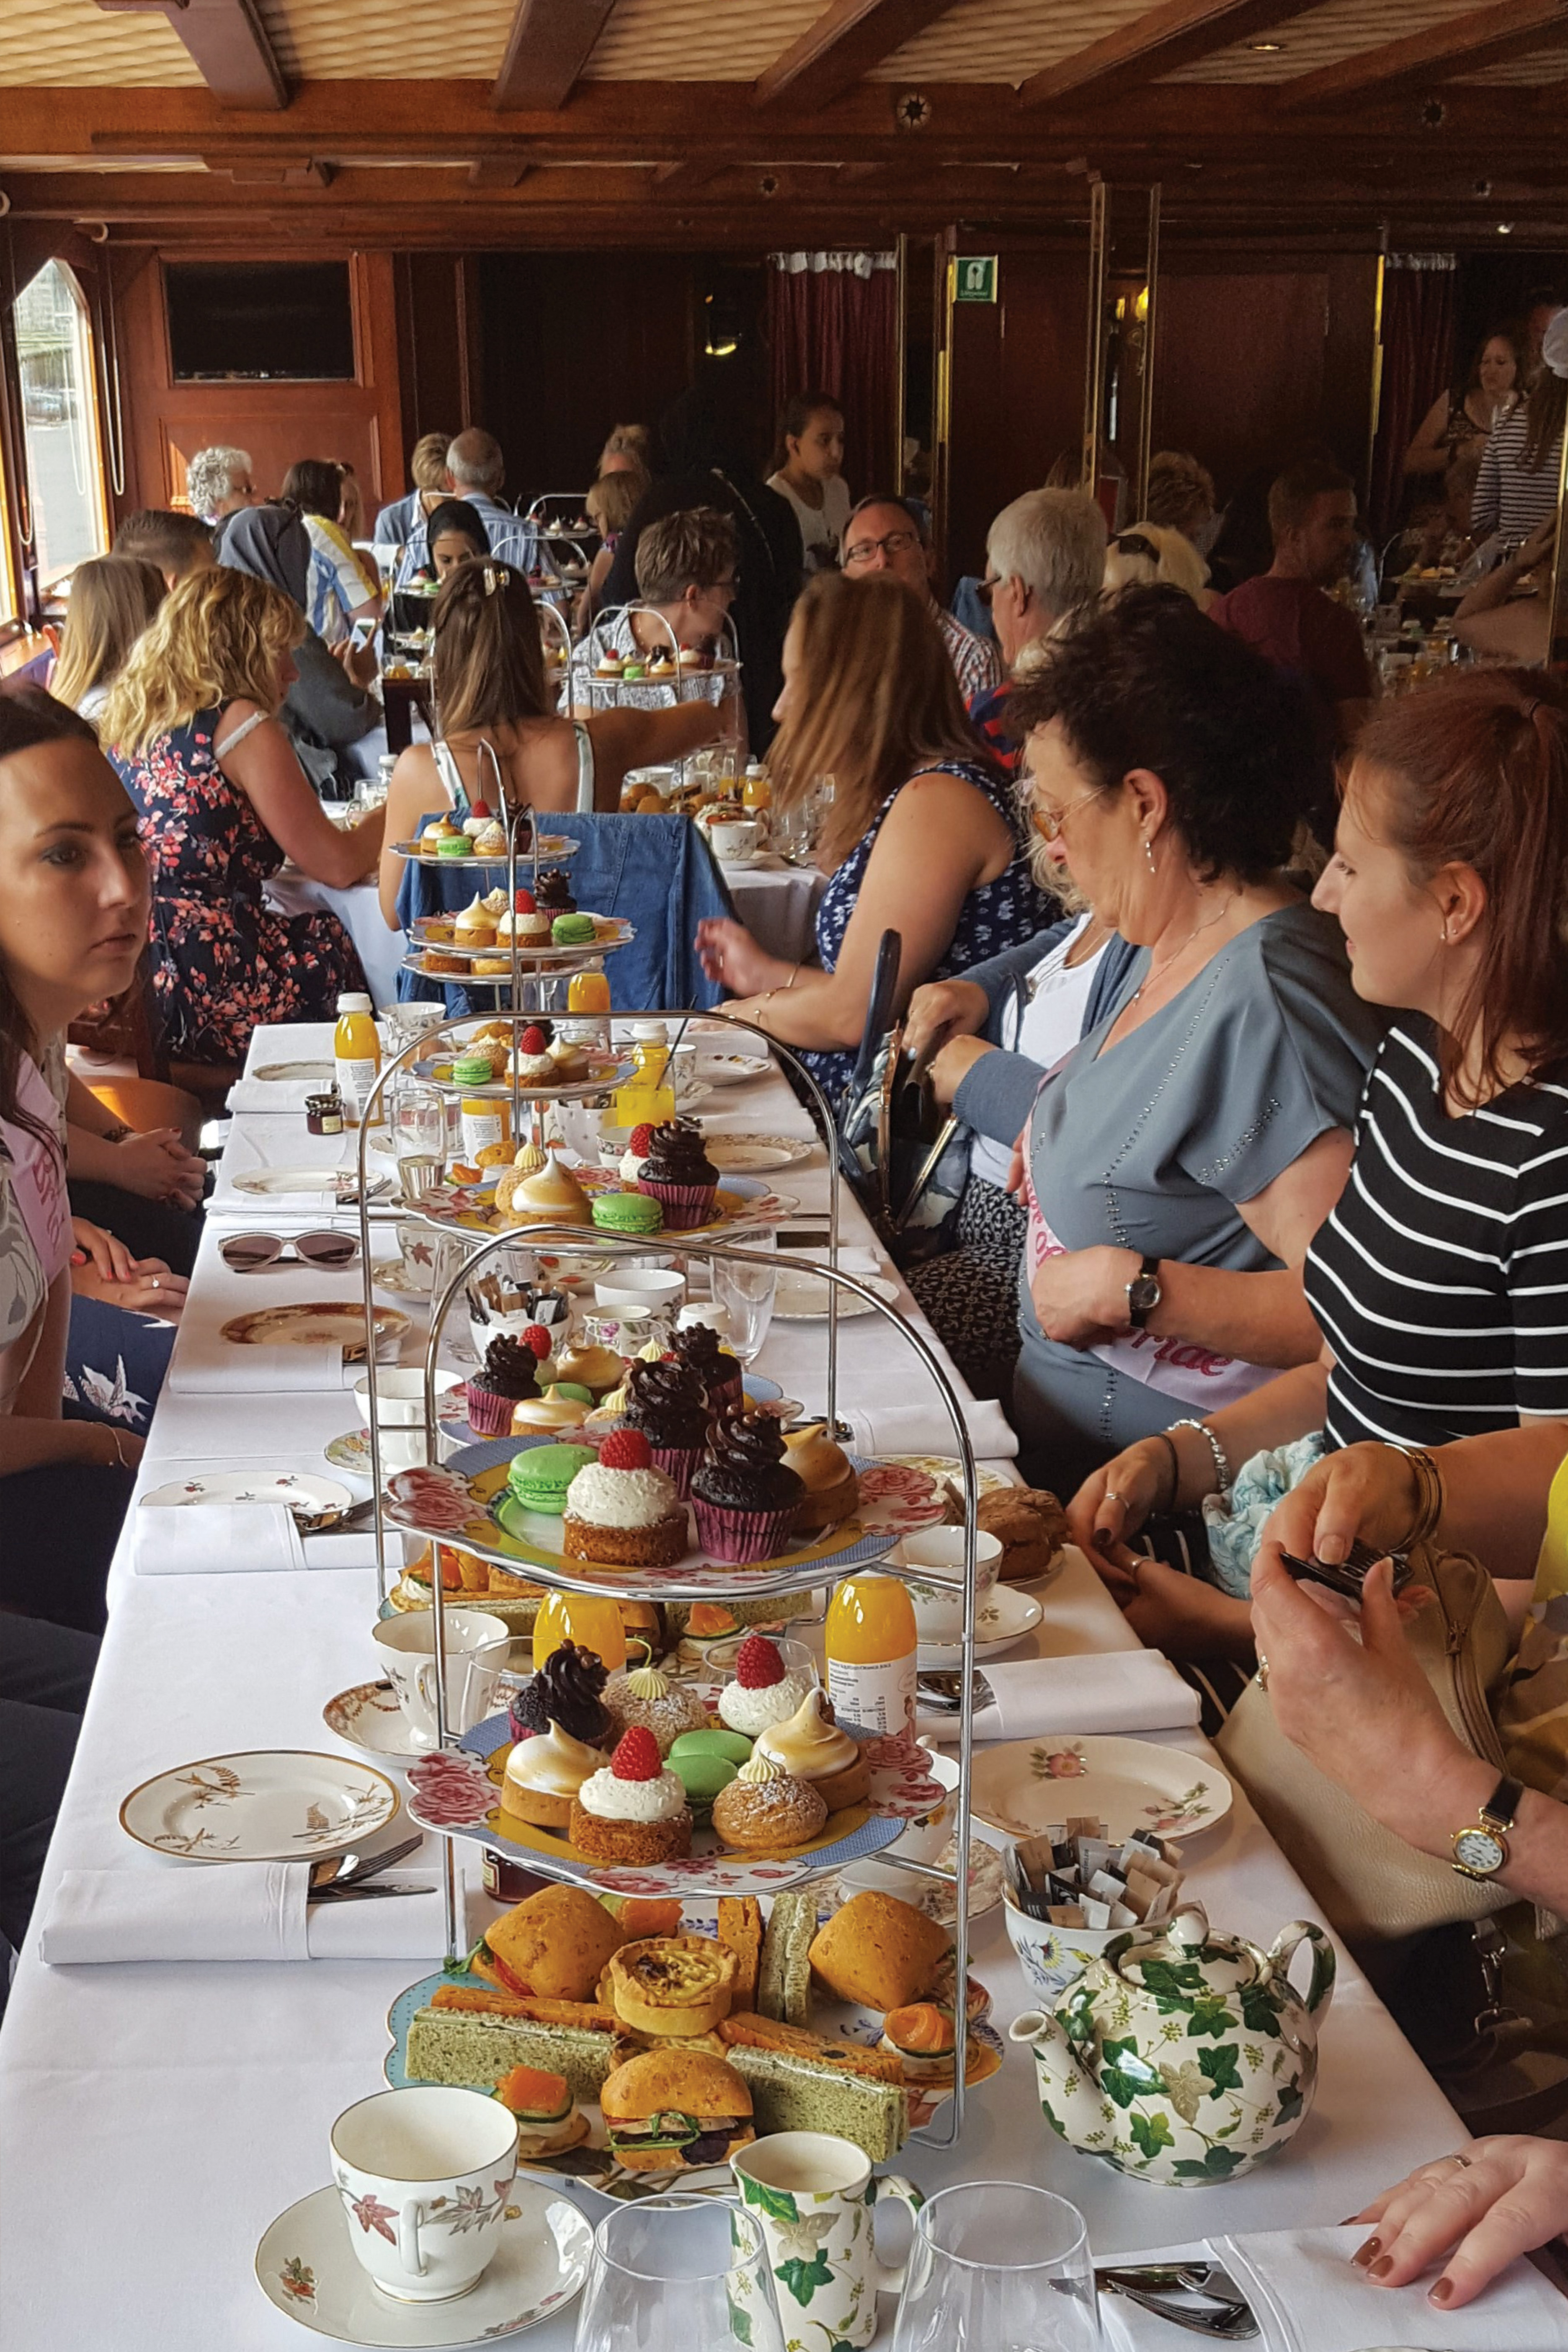 Afternoon Tea on the Move